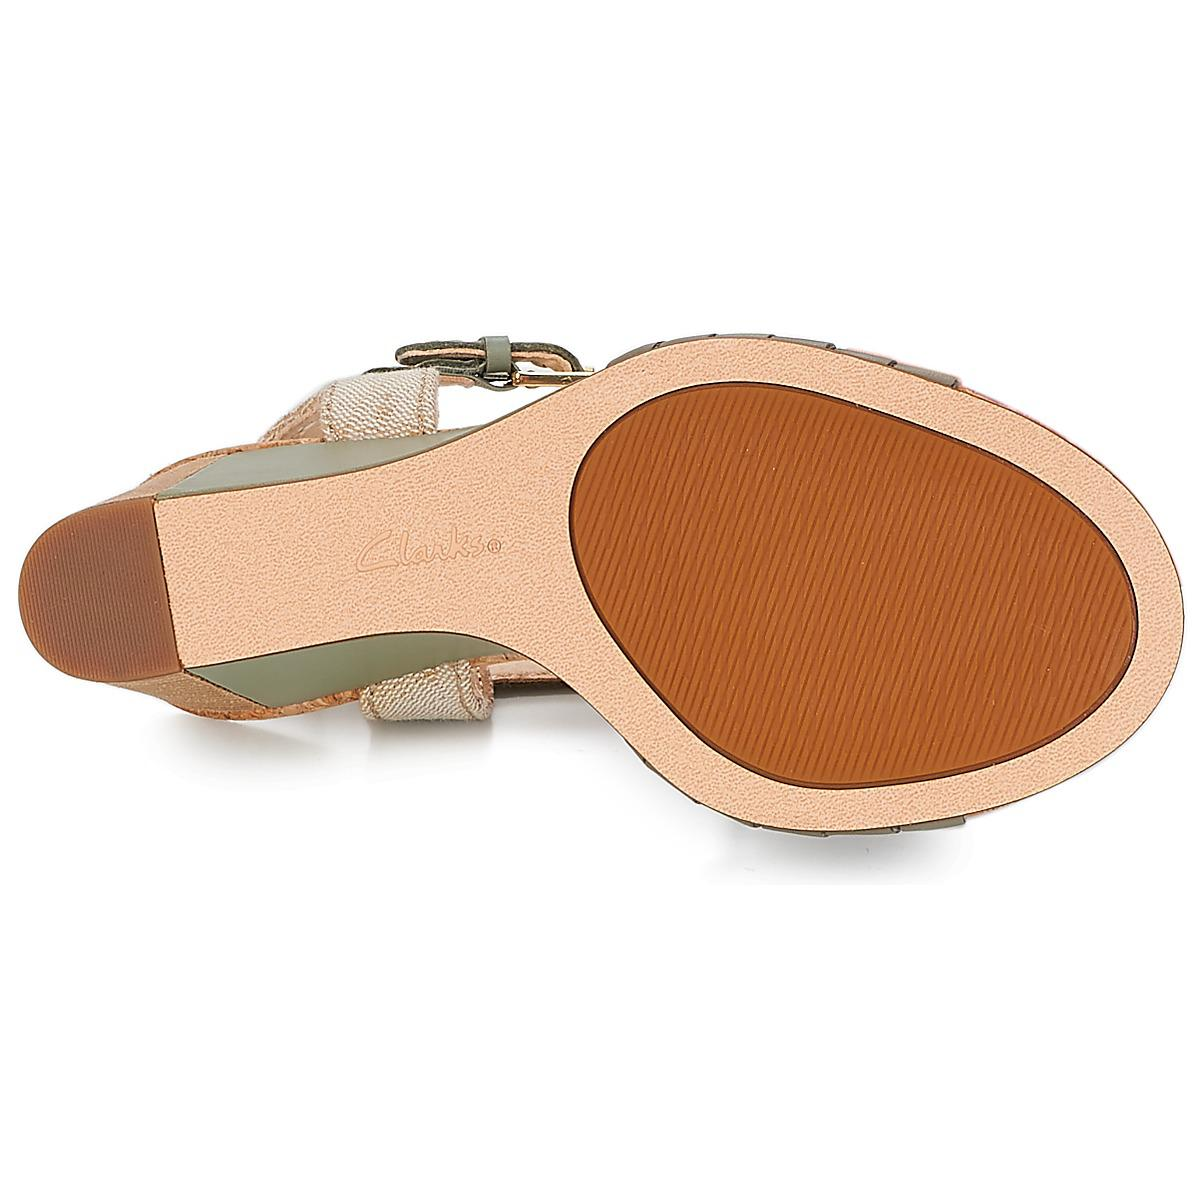 b3492ec71 Clarks - Green Spiced Poppy Sandals - Lyst. View fullscreen